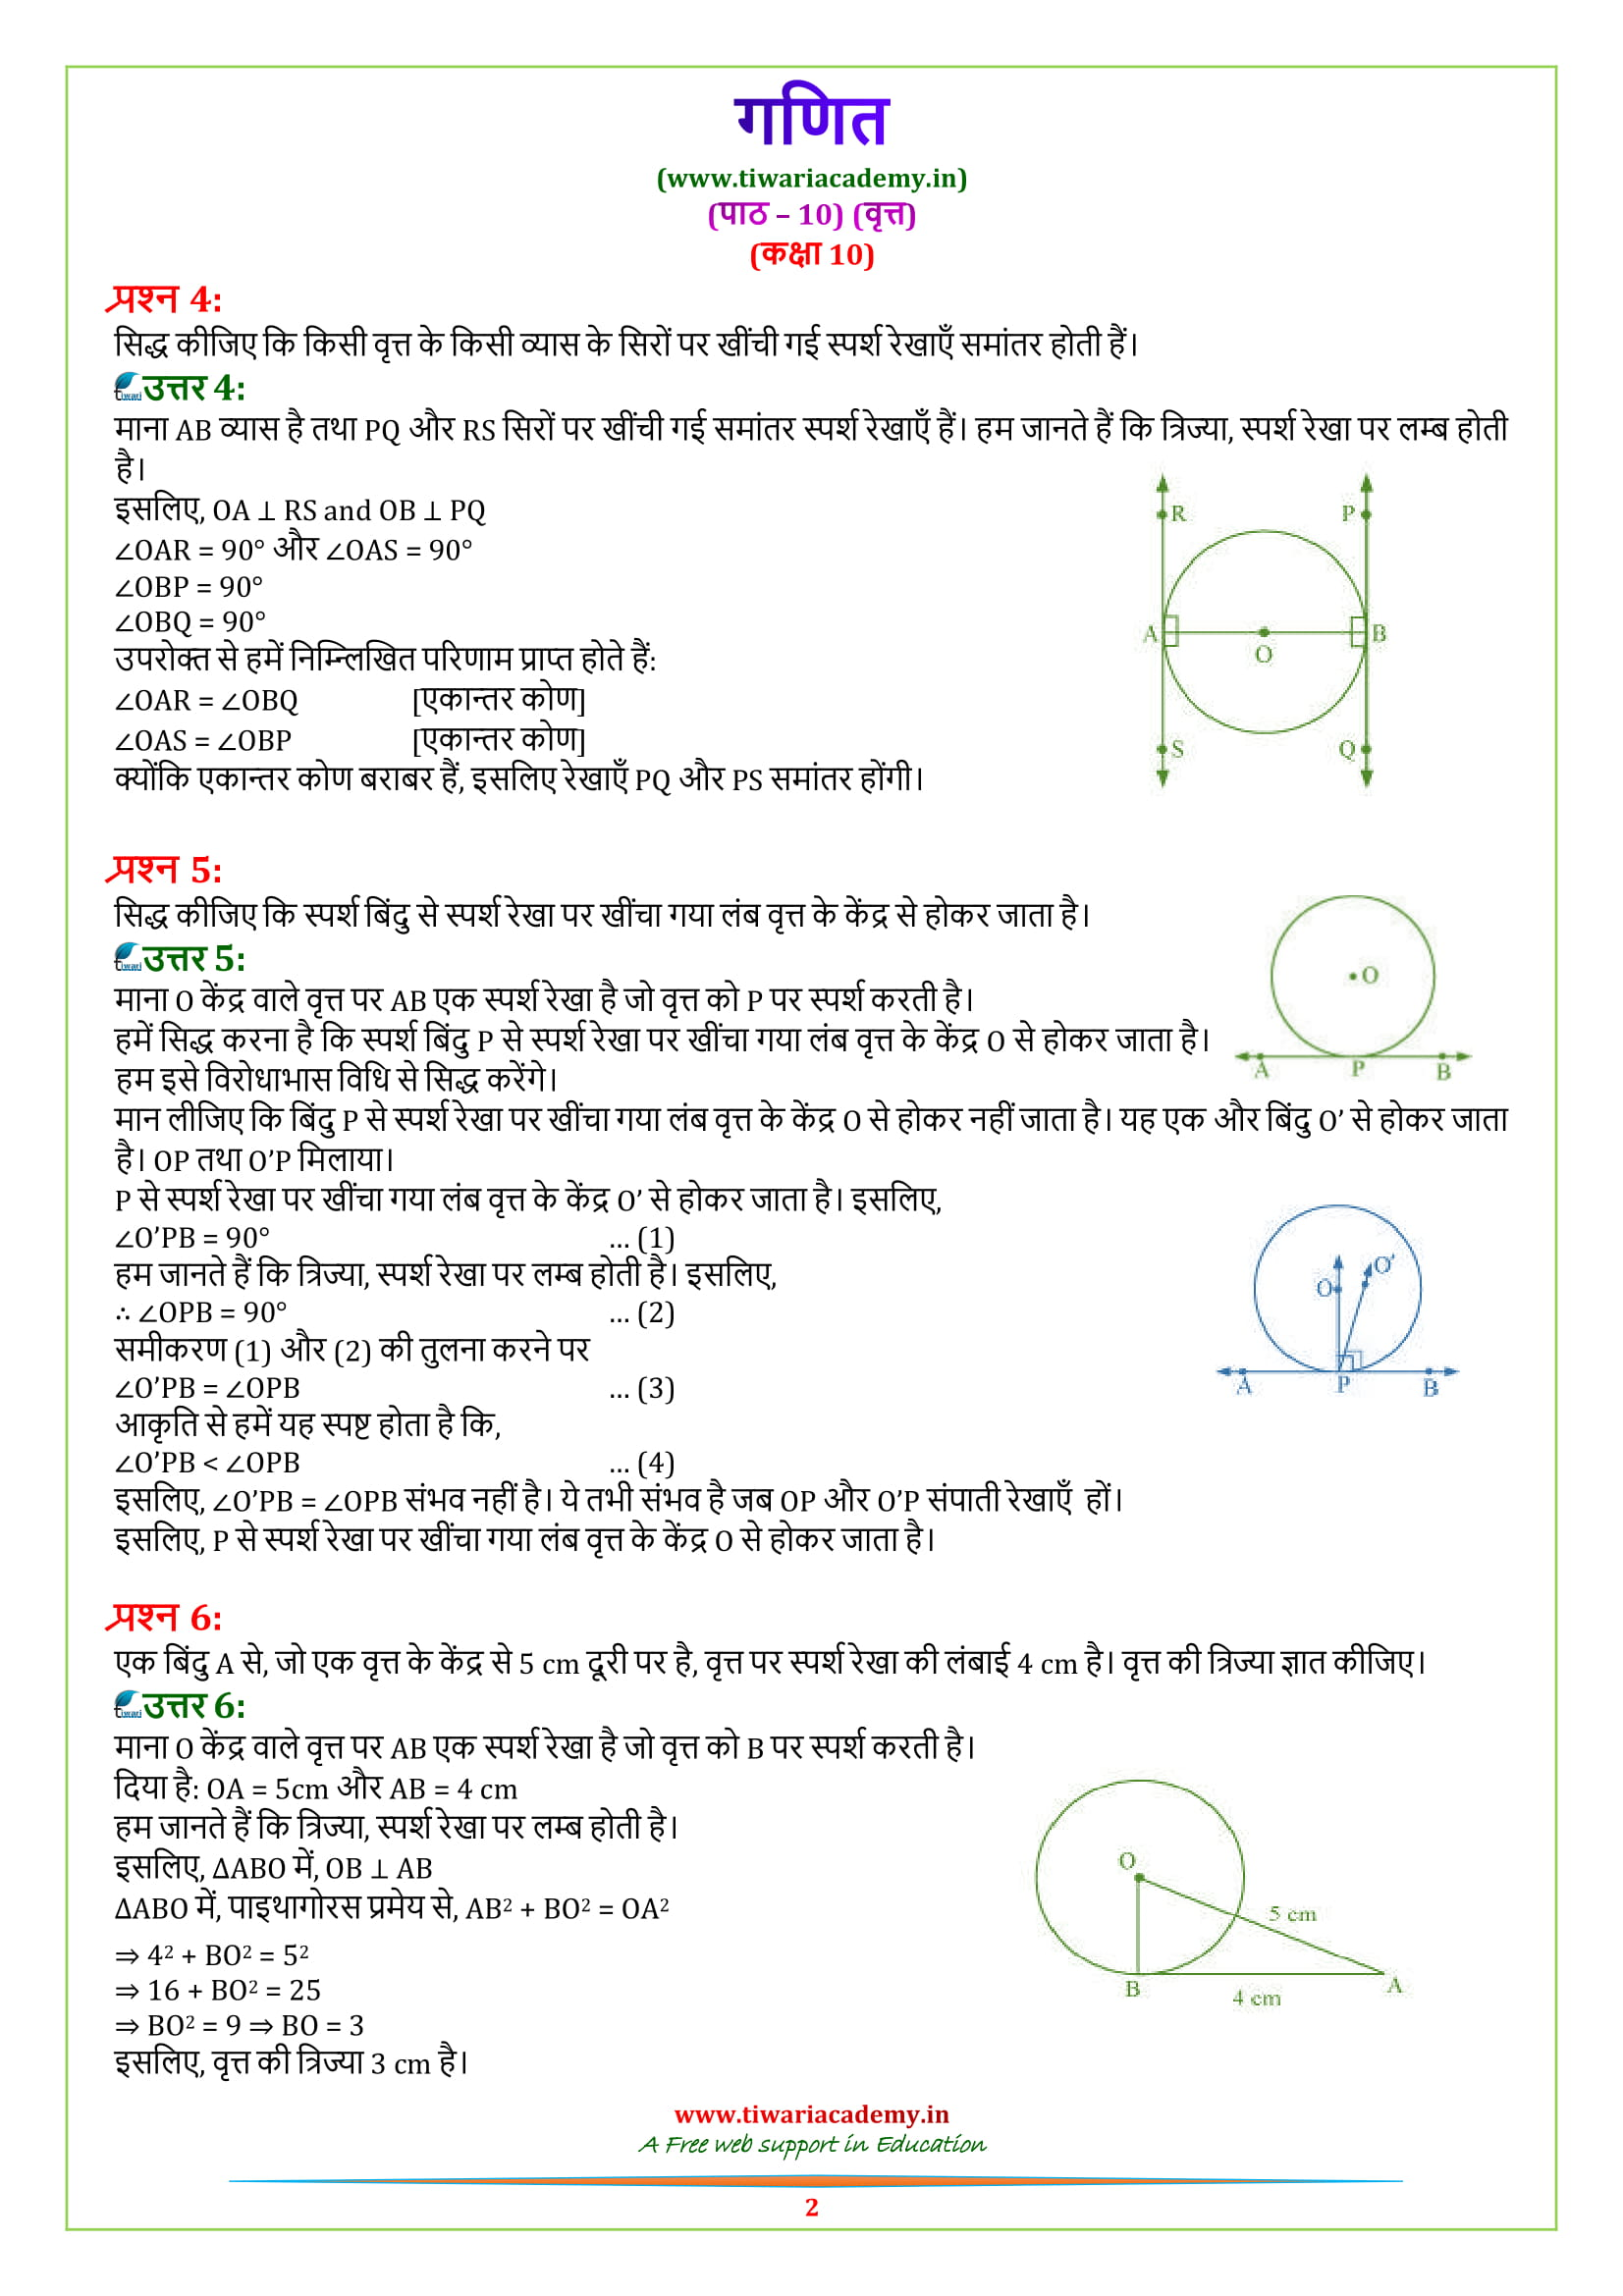 NCERT Solutions for class 10 Maths Chapter 10 Exercise 10.2 updated for new session 2019